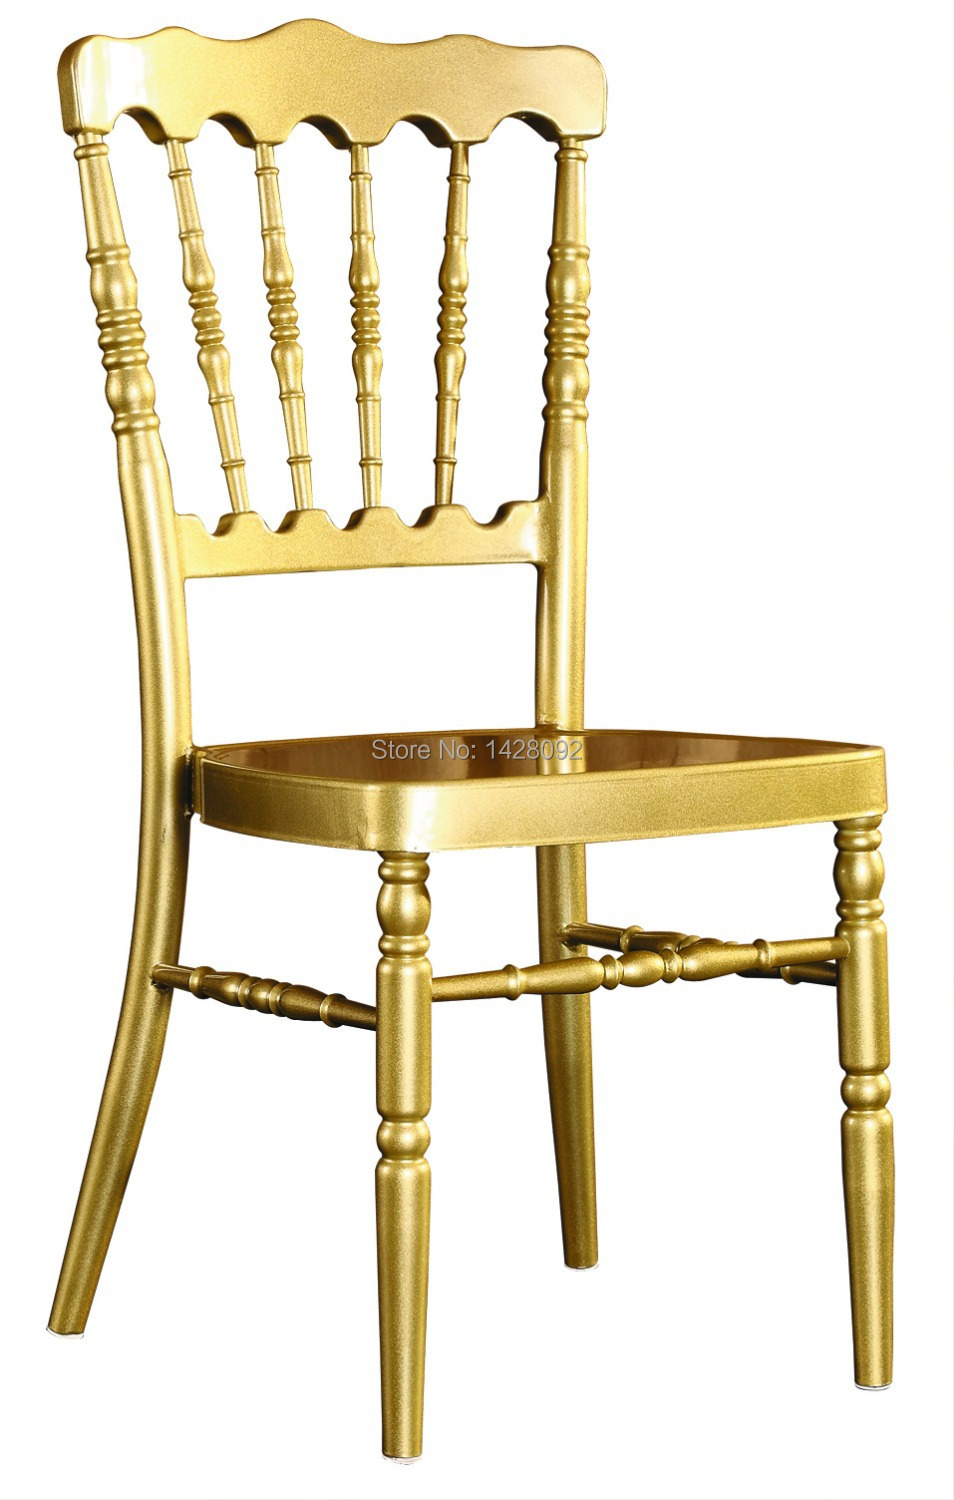 wholesale quality strong gold aluminum napoleon chair for wedding events party<br>